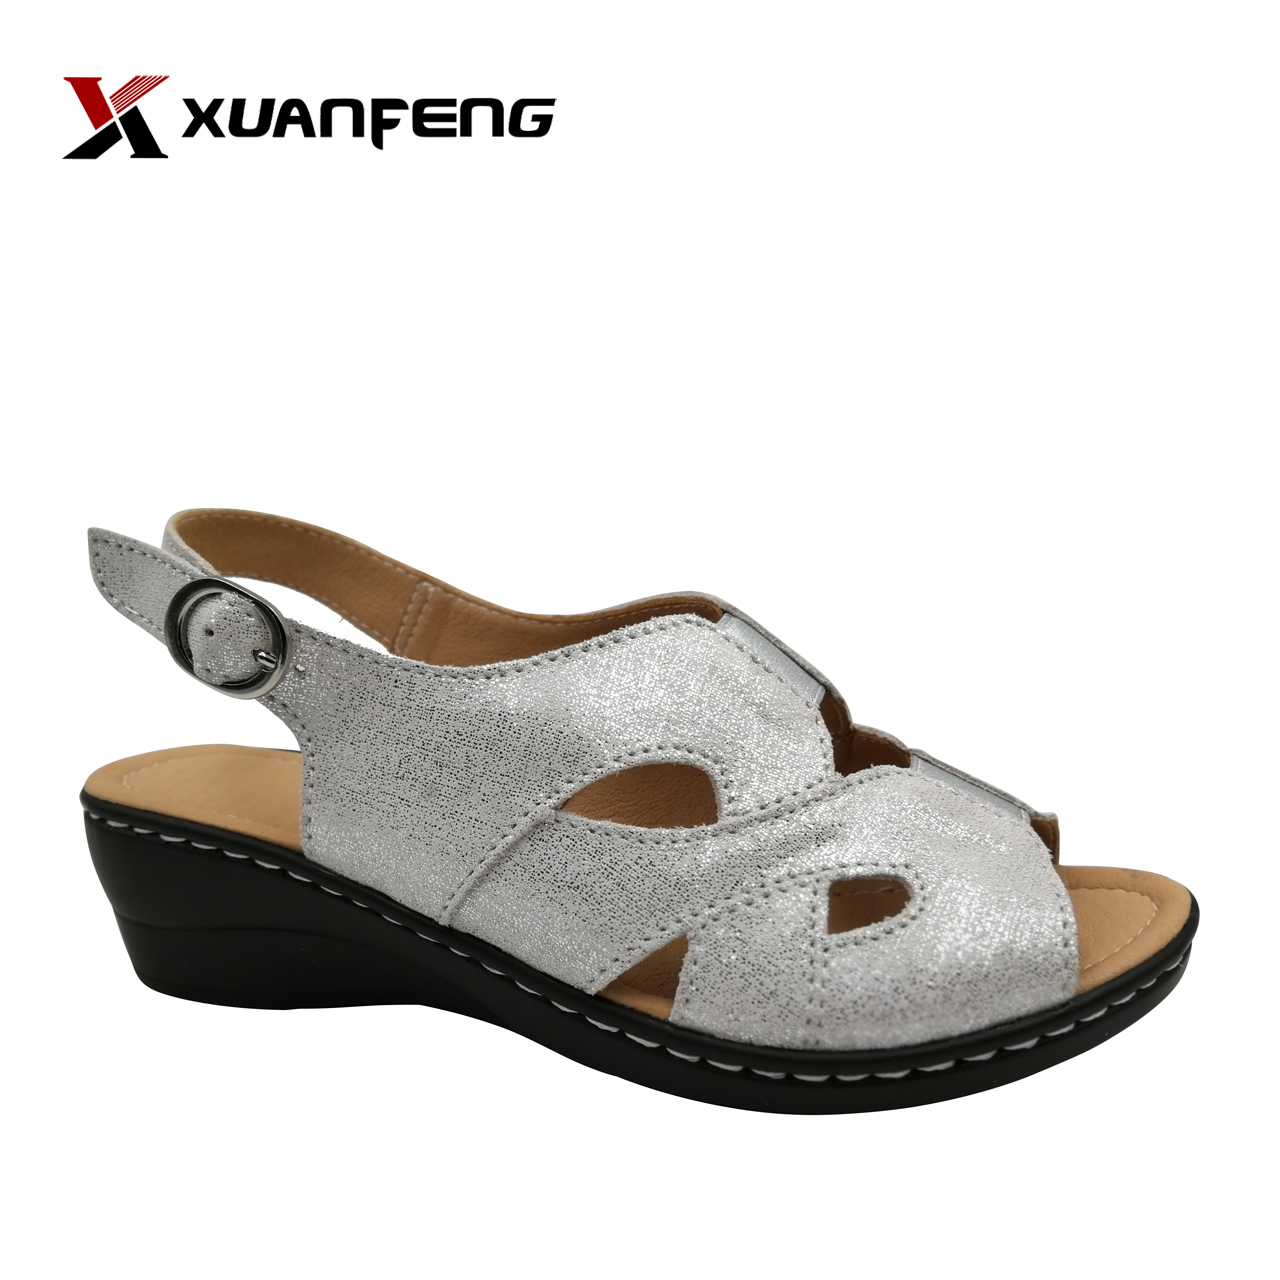 High Quality Handmade Spring Women's Genuine Leather Sandals